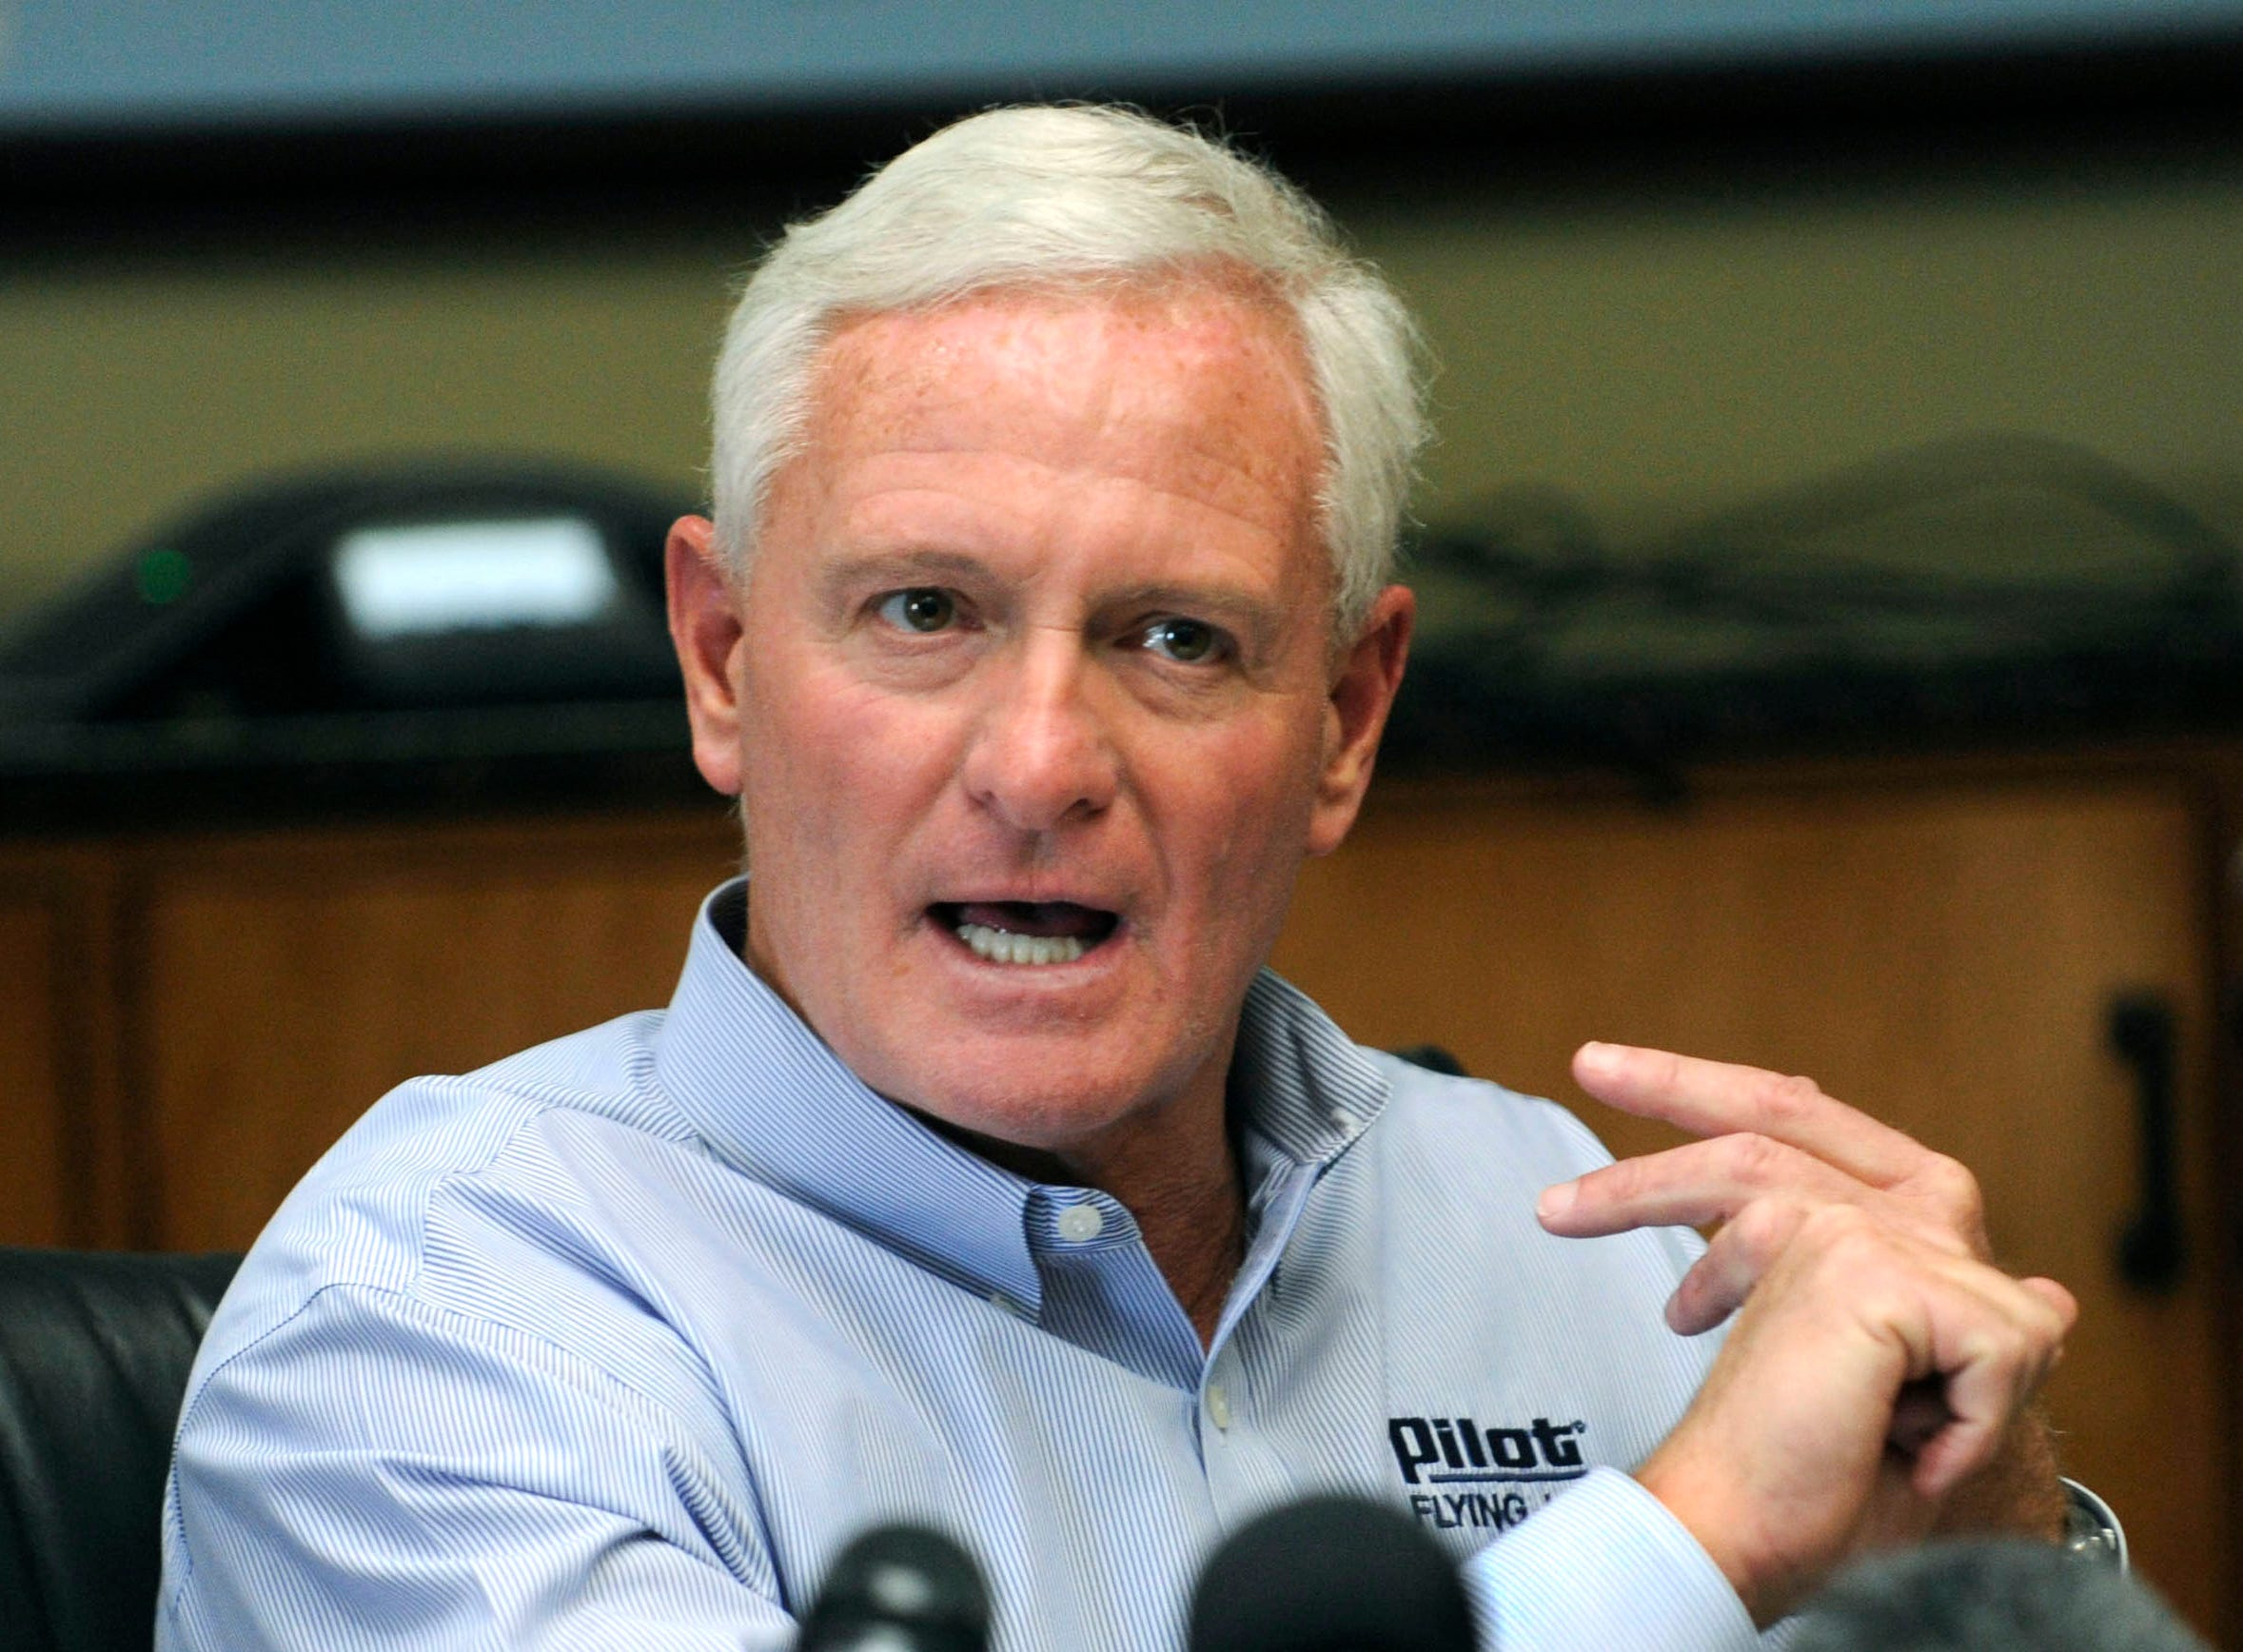 Jimmy Haslam announces he will stay on as the Pilot Flying J CEO during a news conference Friday at the company's Lonas Road headquarters. The announcement comes as Pilot Flying J faces intense pressure in connection with a FBI criminal investigation into claims of failure to pay rebates to trucking customers.